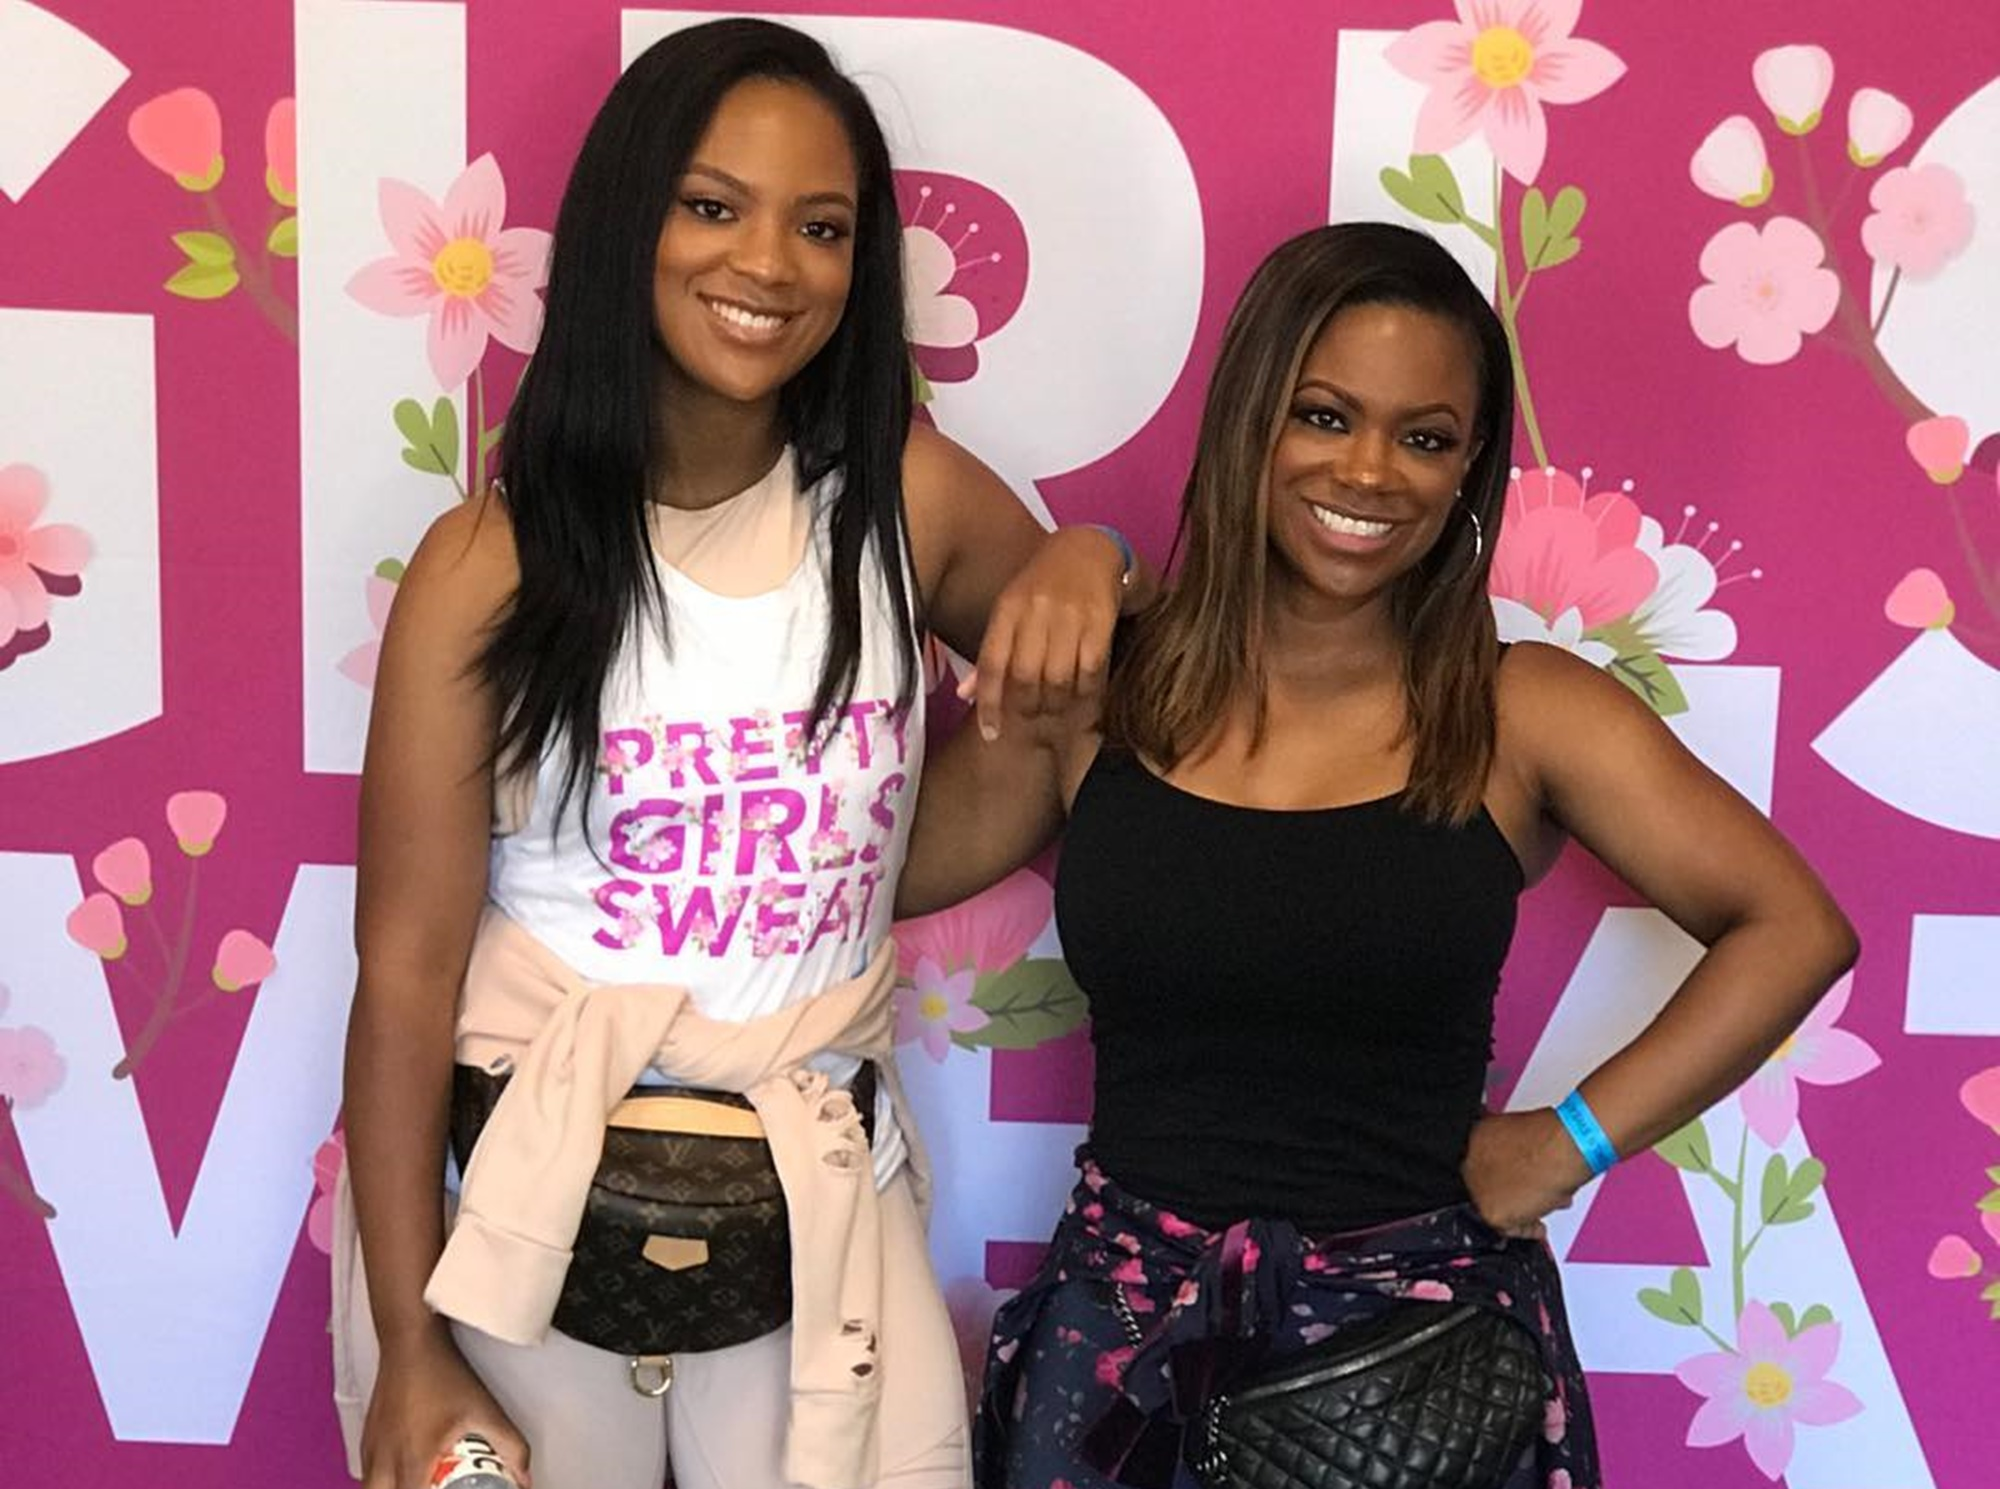 kandi-burruss-documents-her-fun-weekend-with-riley-burruss-here-are-the-cute-pics-in-which-the-ladies-are-twinning